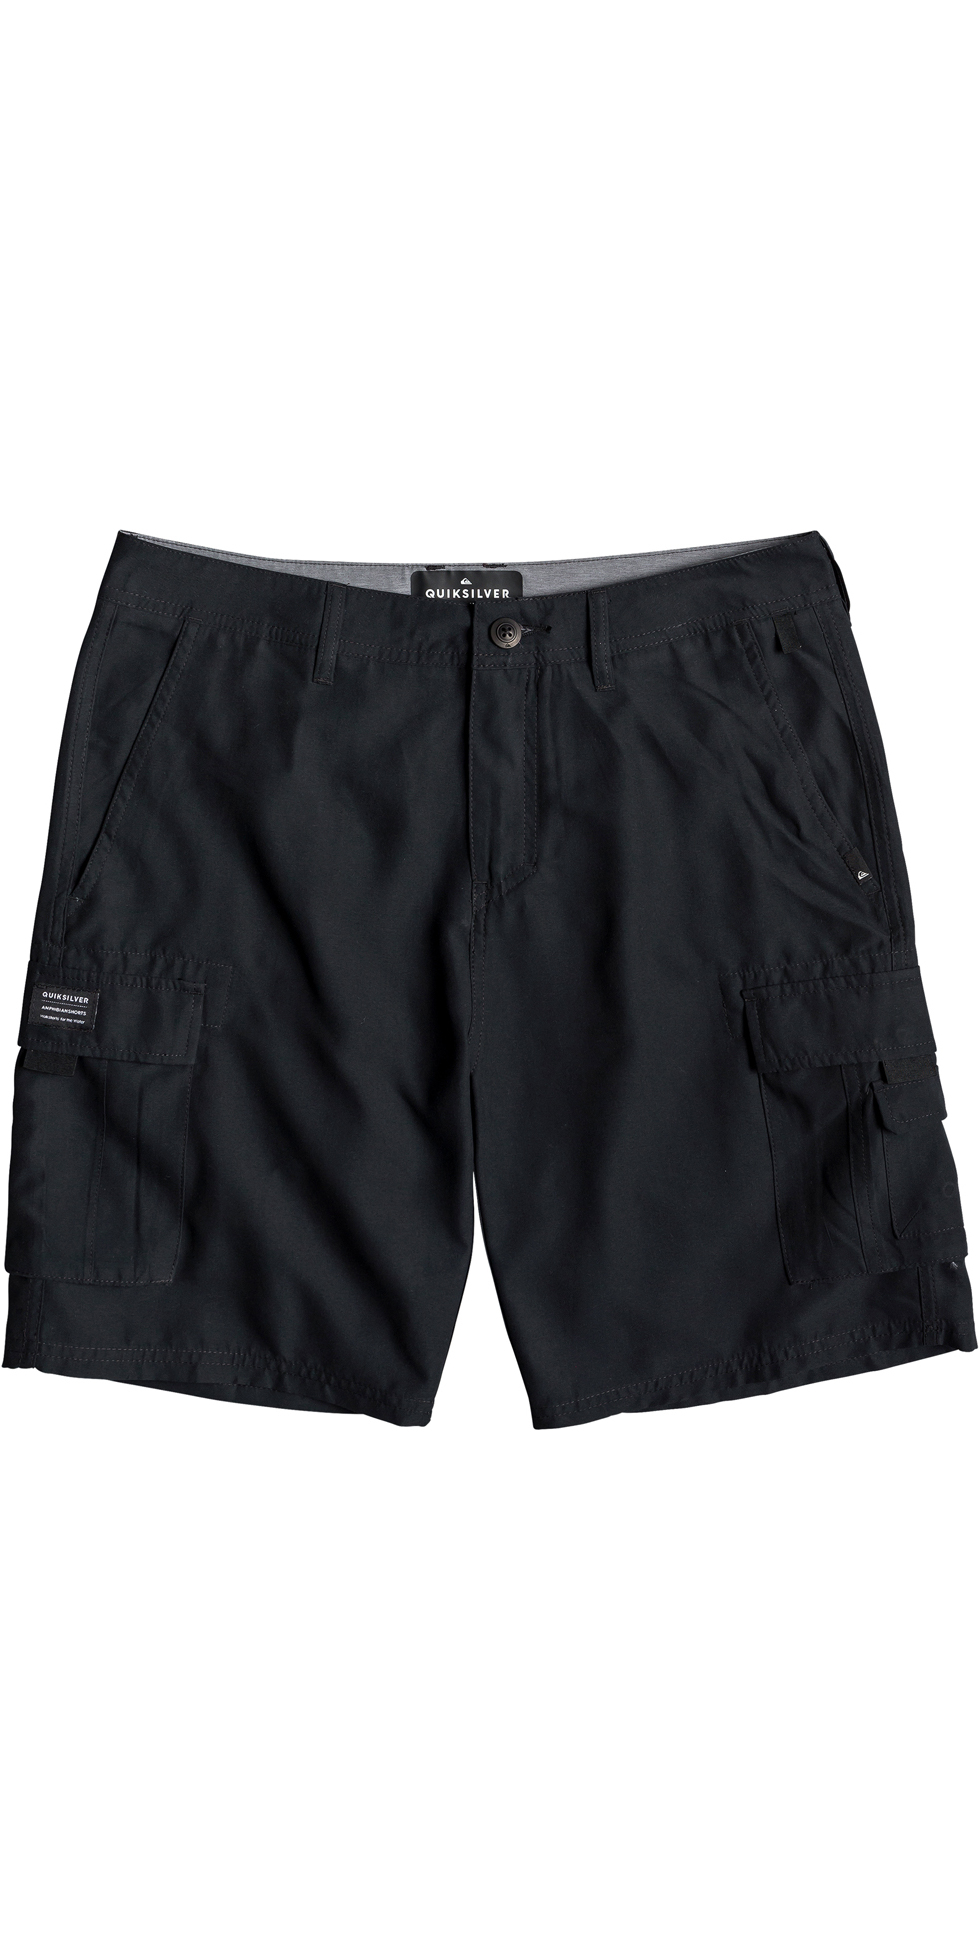 "2019 Quiksilver Rogue Surfwash 20 ""amphibian Boardshorts Black Eqyws03589"